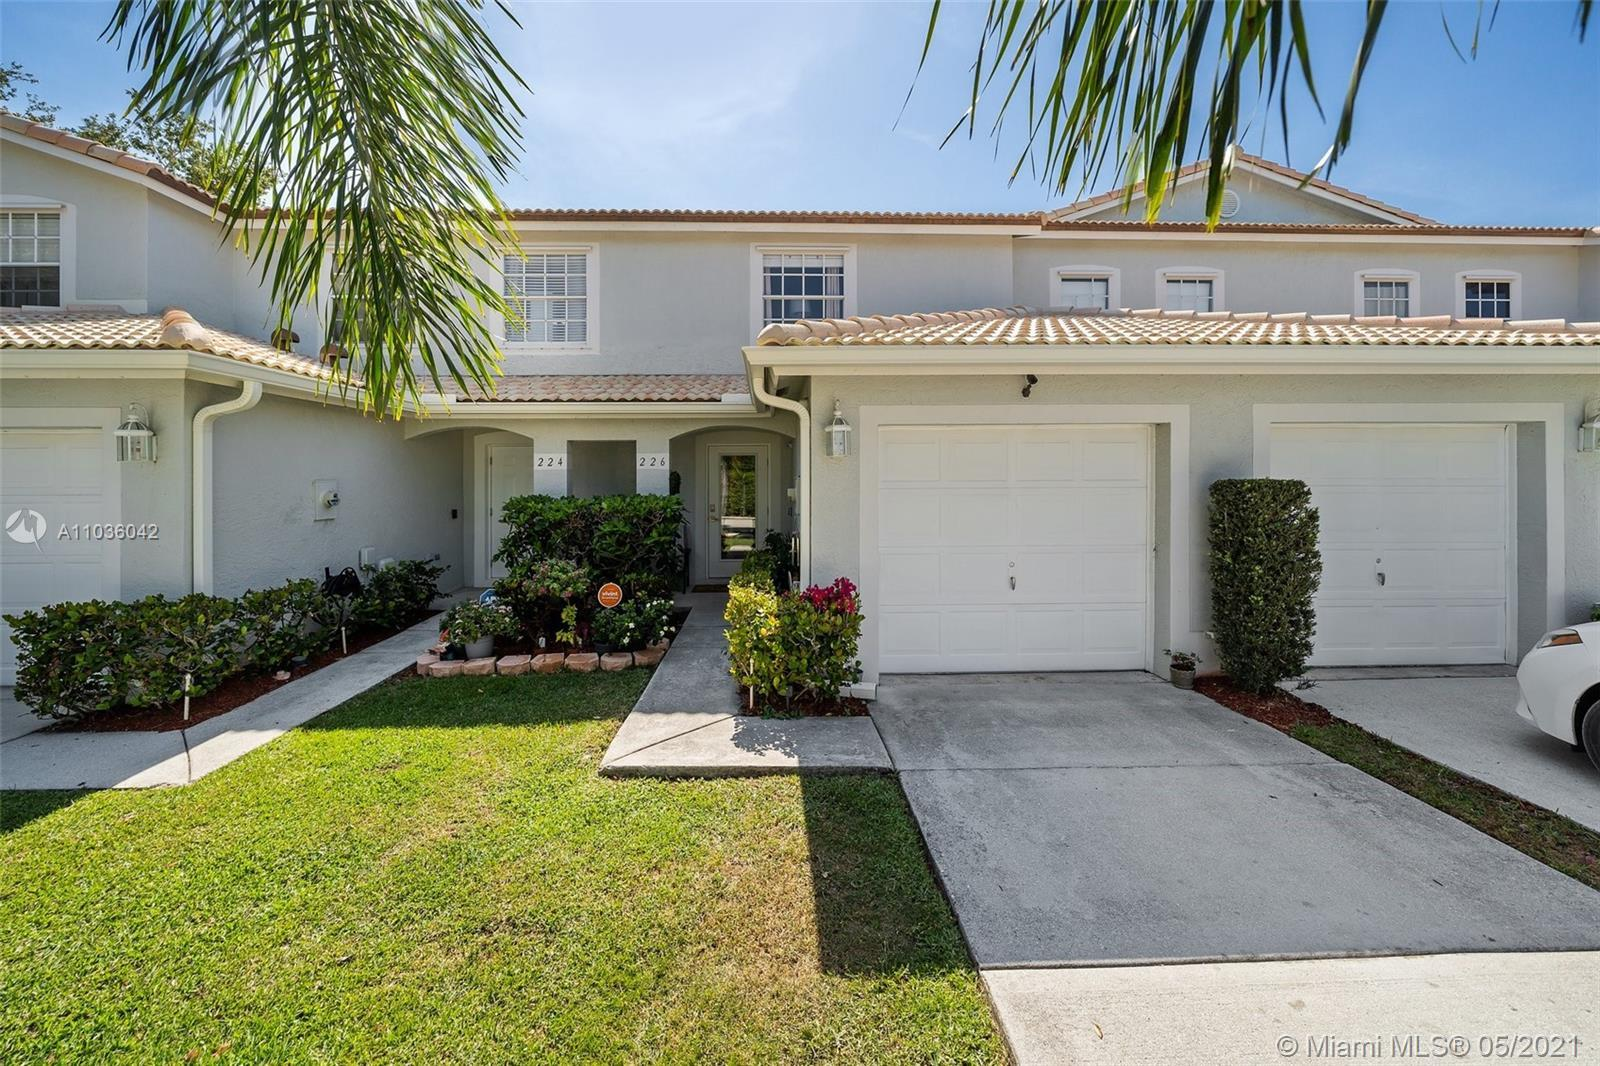 Beautifully updated townhome in gated community, centrally located, near everything. Tons of natural